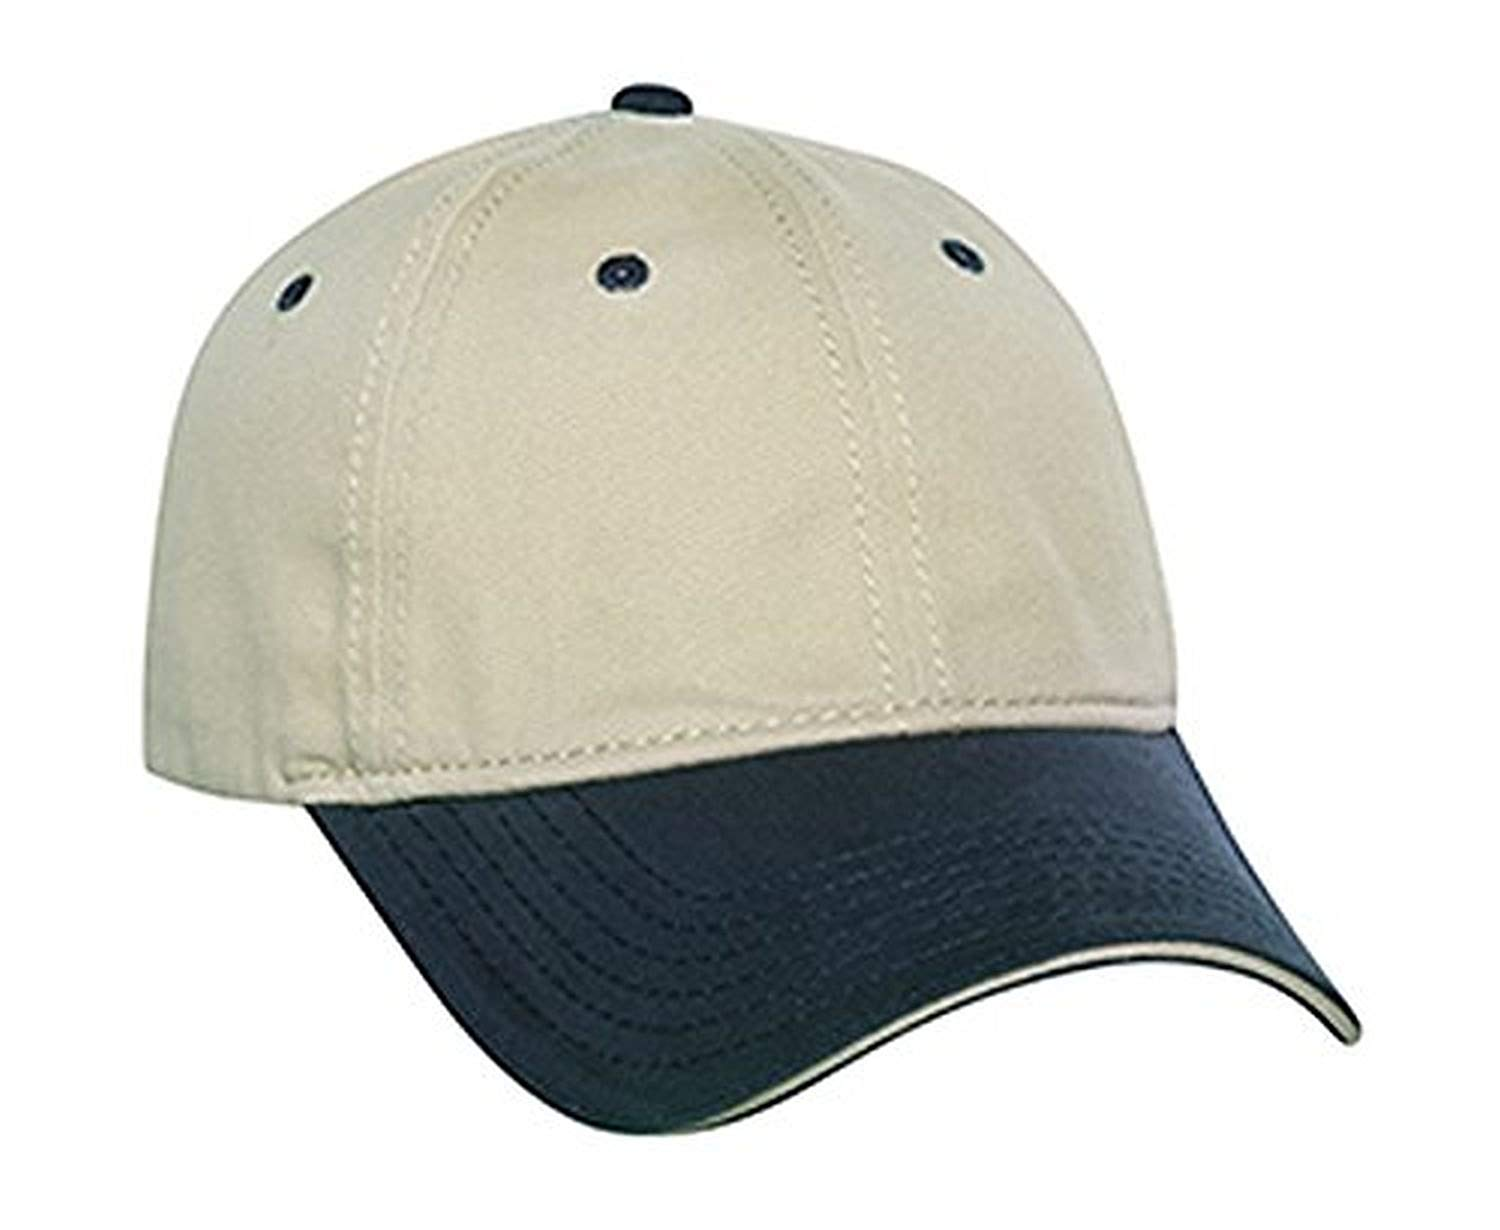 Hats & Caps Shop Superior Garment Washed Cn Twill Sandwich Visor Low Profile Pro Style Caps - By TheTargetBuys